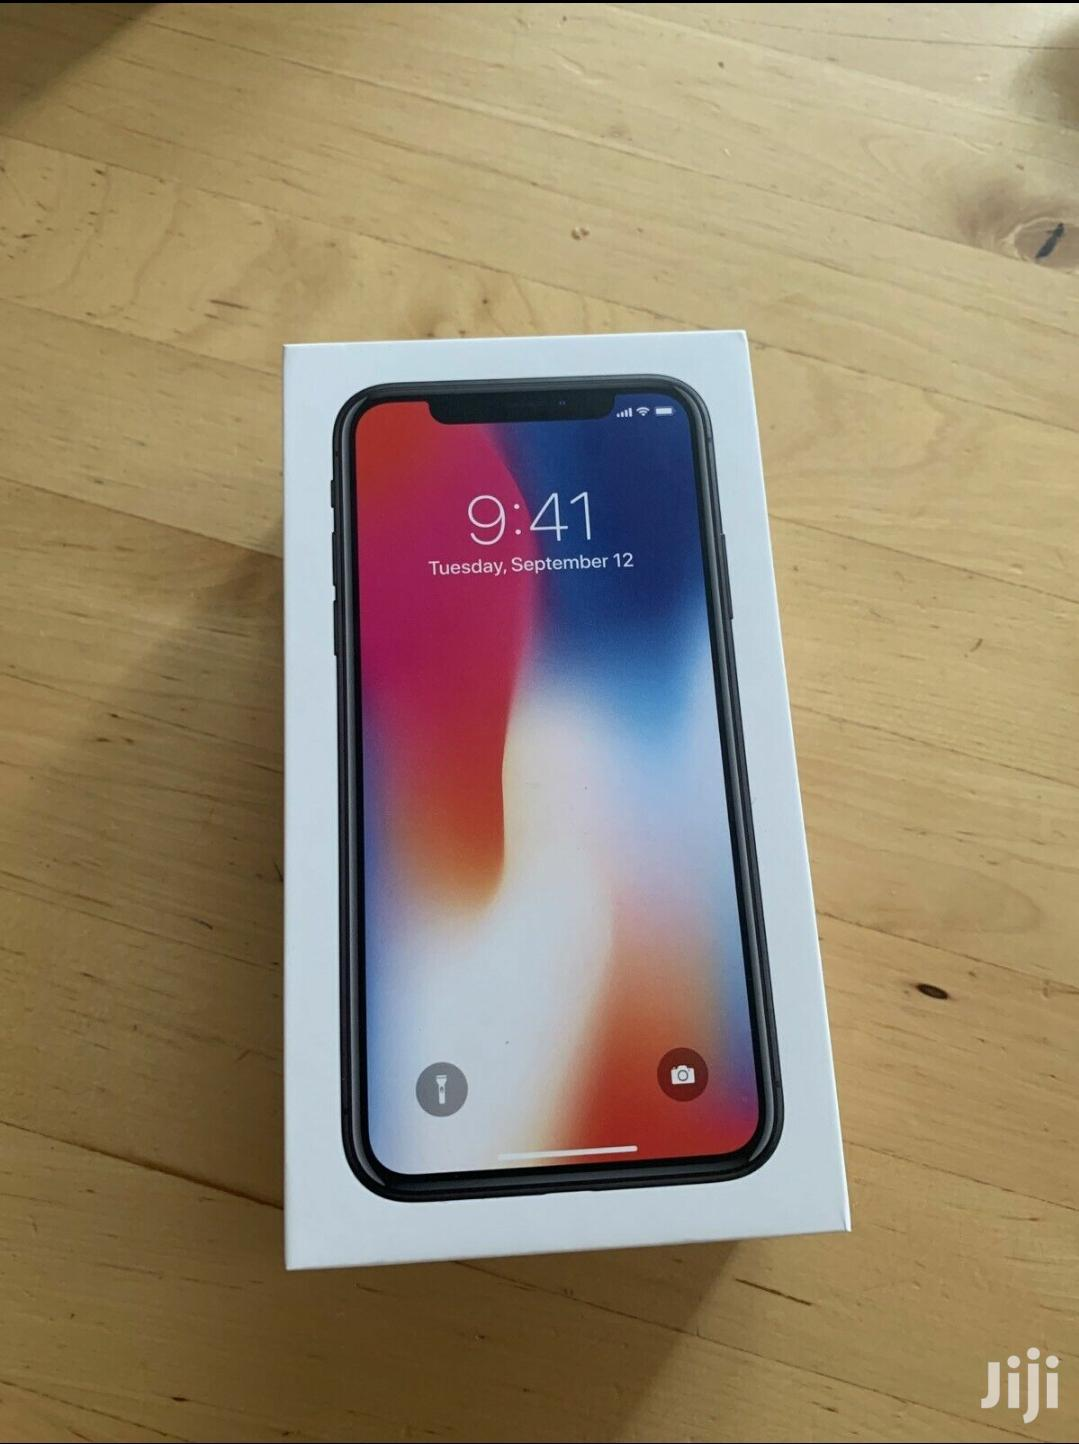 New Apple iPhone X 256 GB | Mobile Phones for sale in Accra Metropolitan, Greater Accra, Ghana